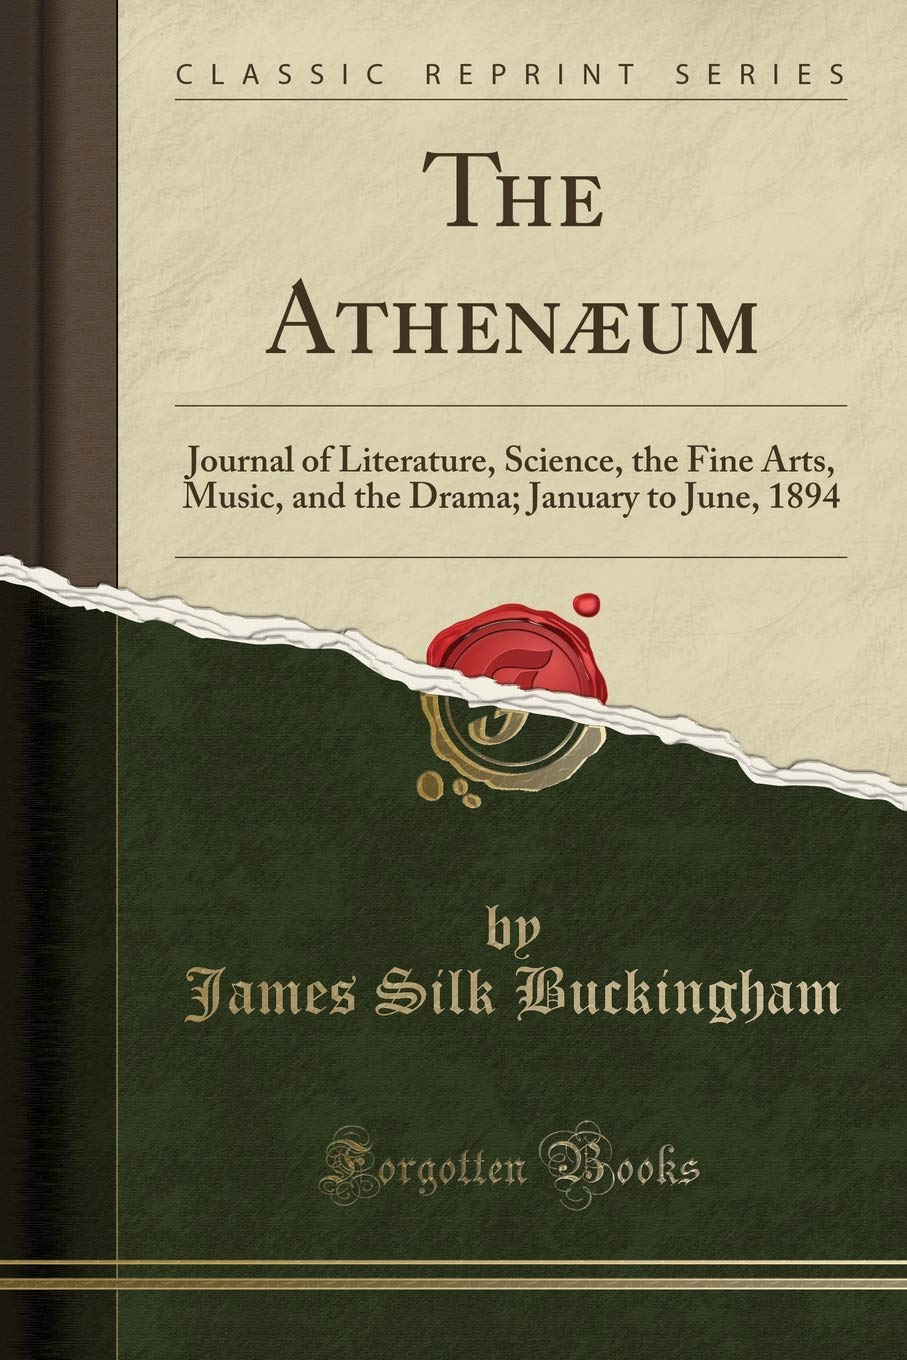 Download The Athenæum: Journal of Literature, Science, the Fine Arts, Music, and the Drama; January to June, 1894 (Classic Reprint) PDF